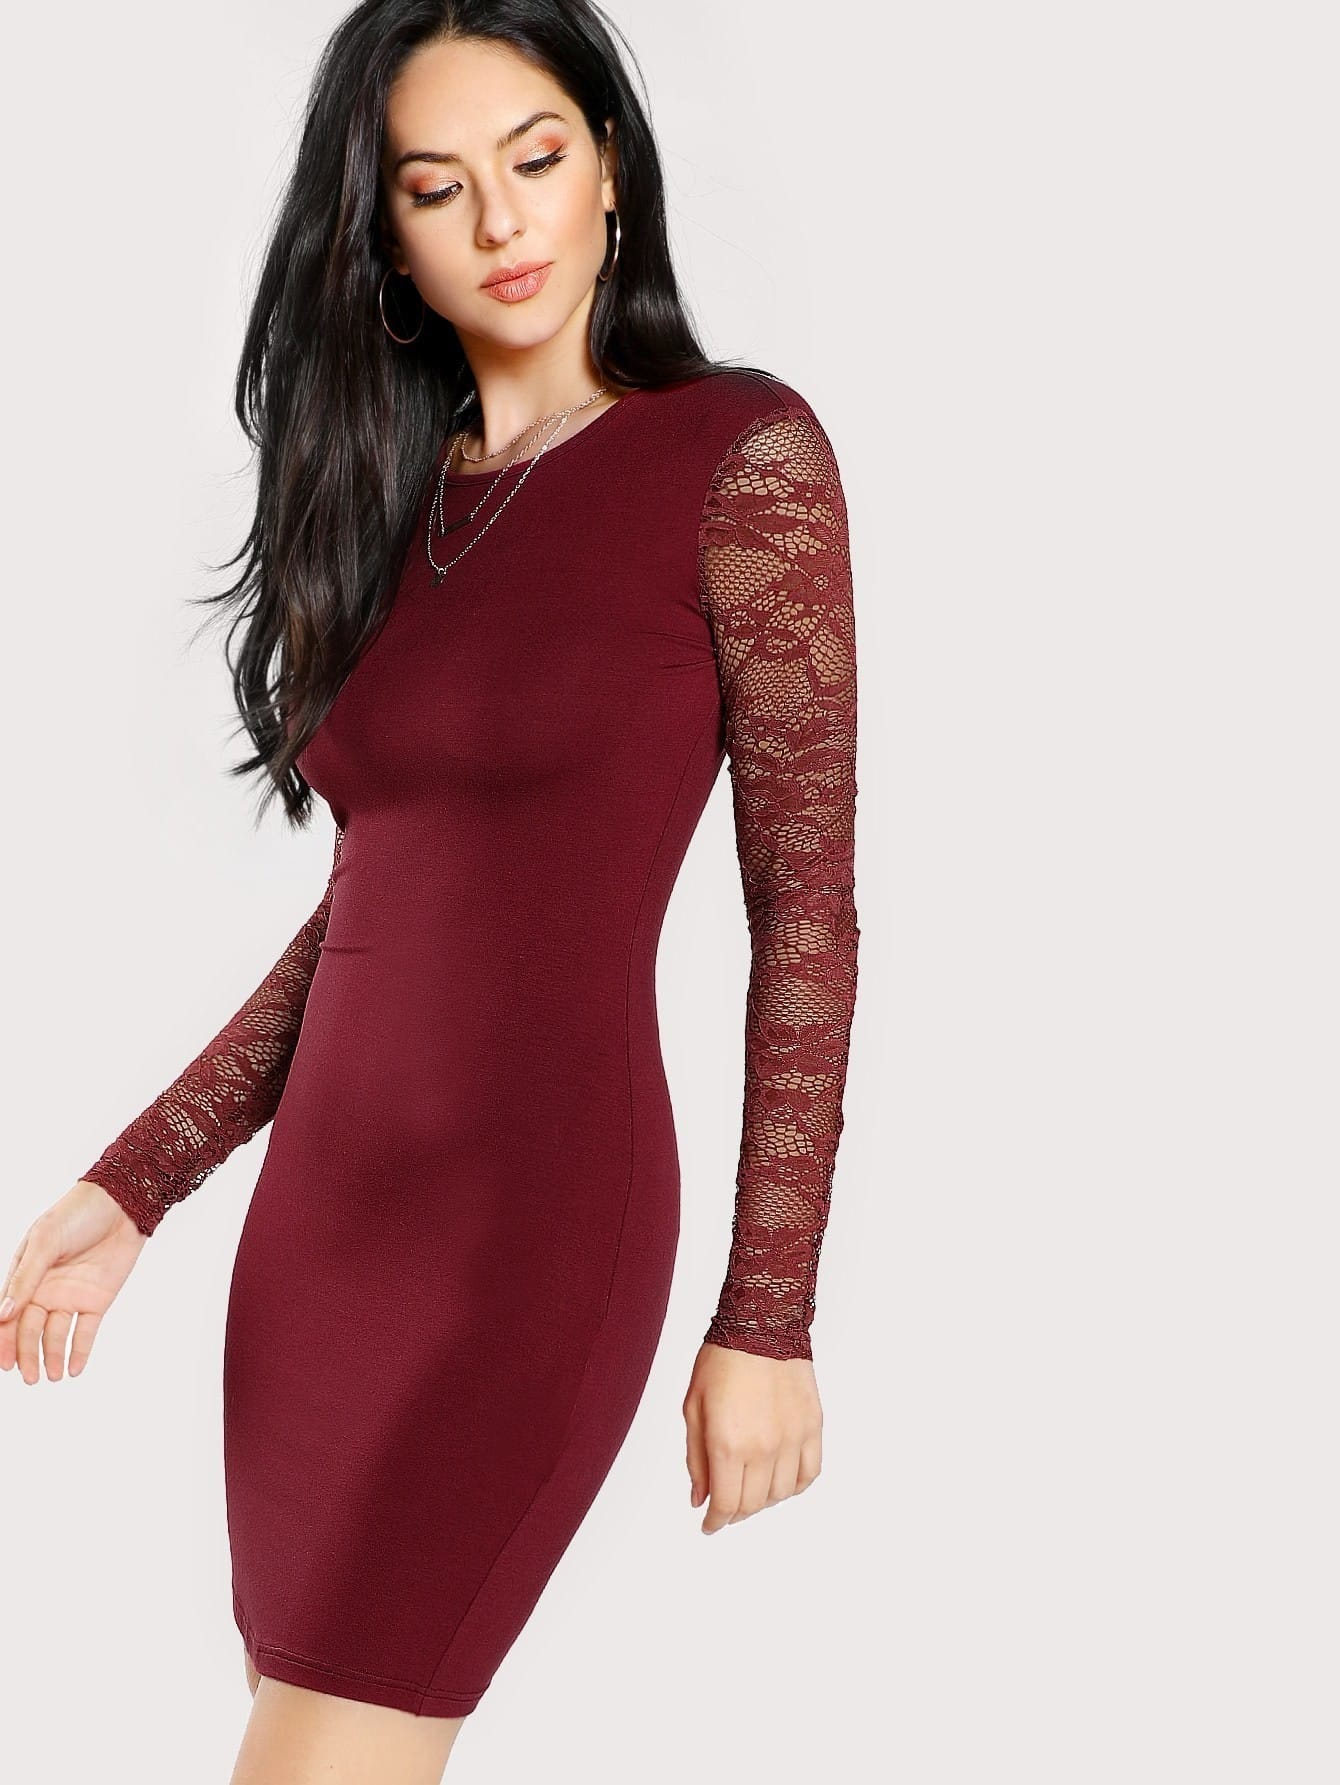 Solid Pencil Dress With Lace Sleeve